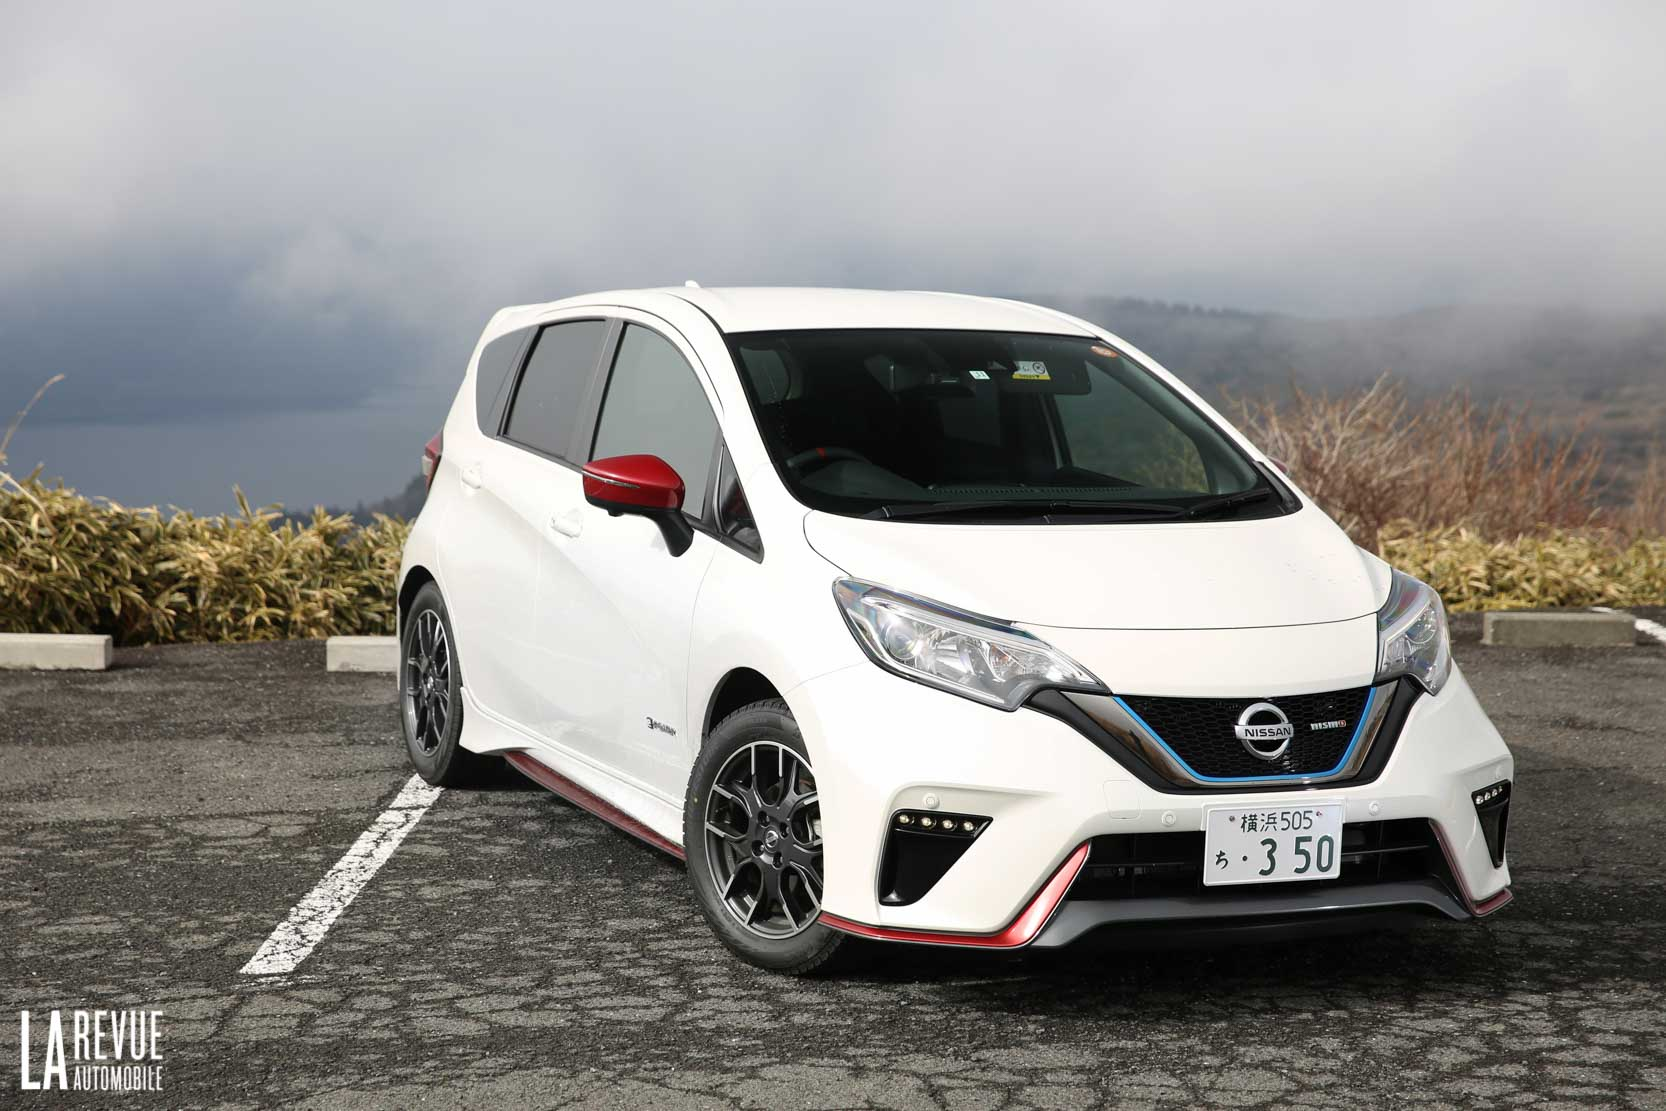 Exterieur_Nissan-Note-E-Power-Nismo-Roadtrip-Japon_0